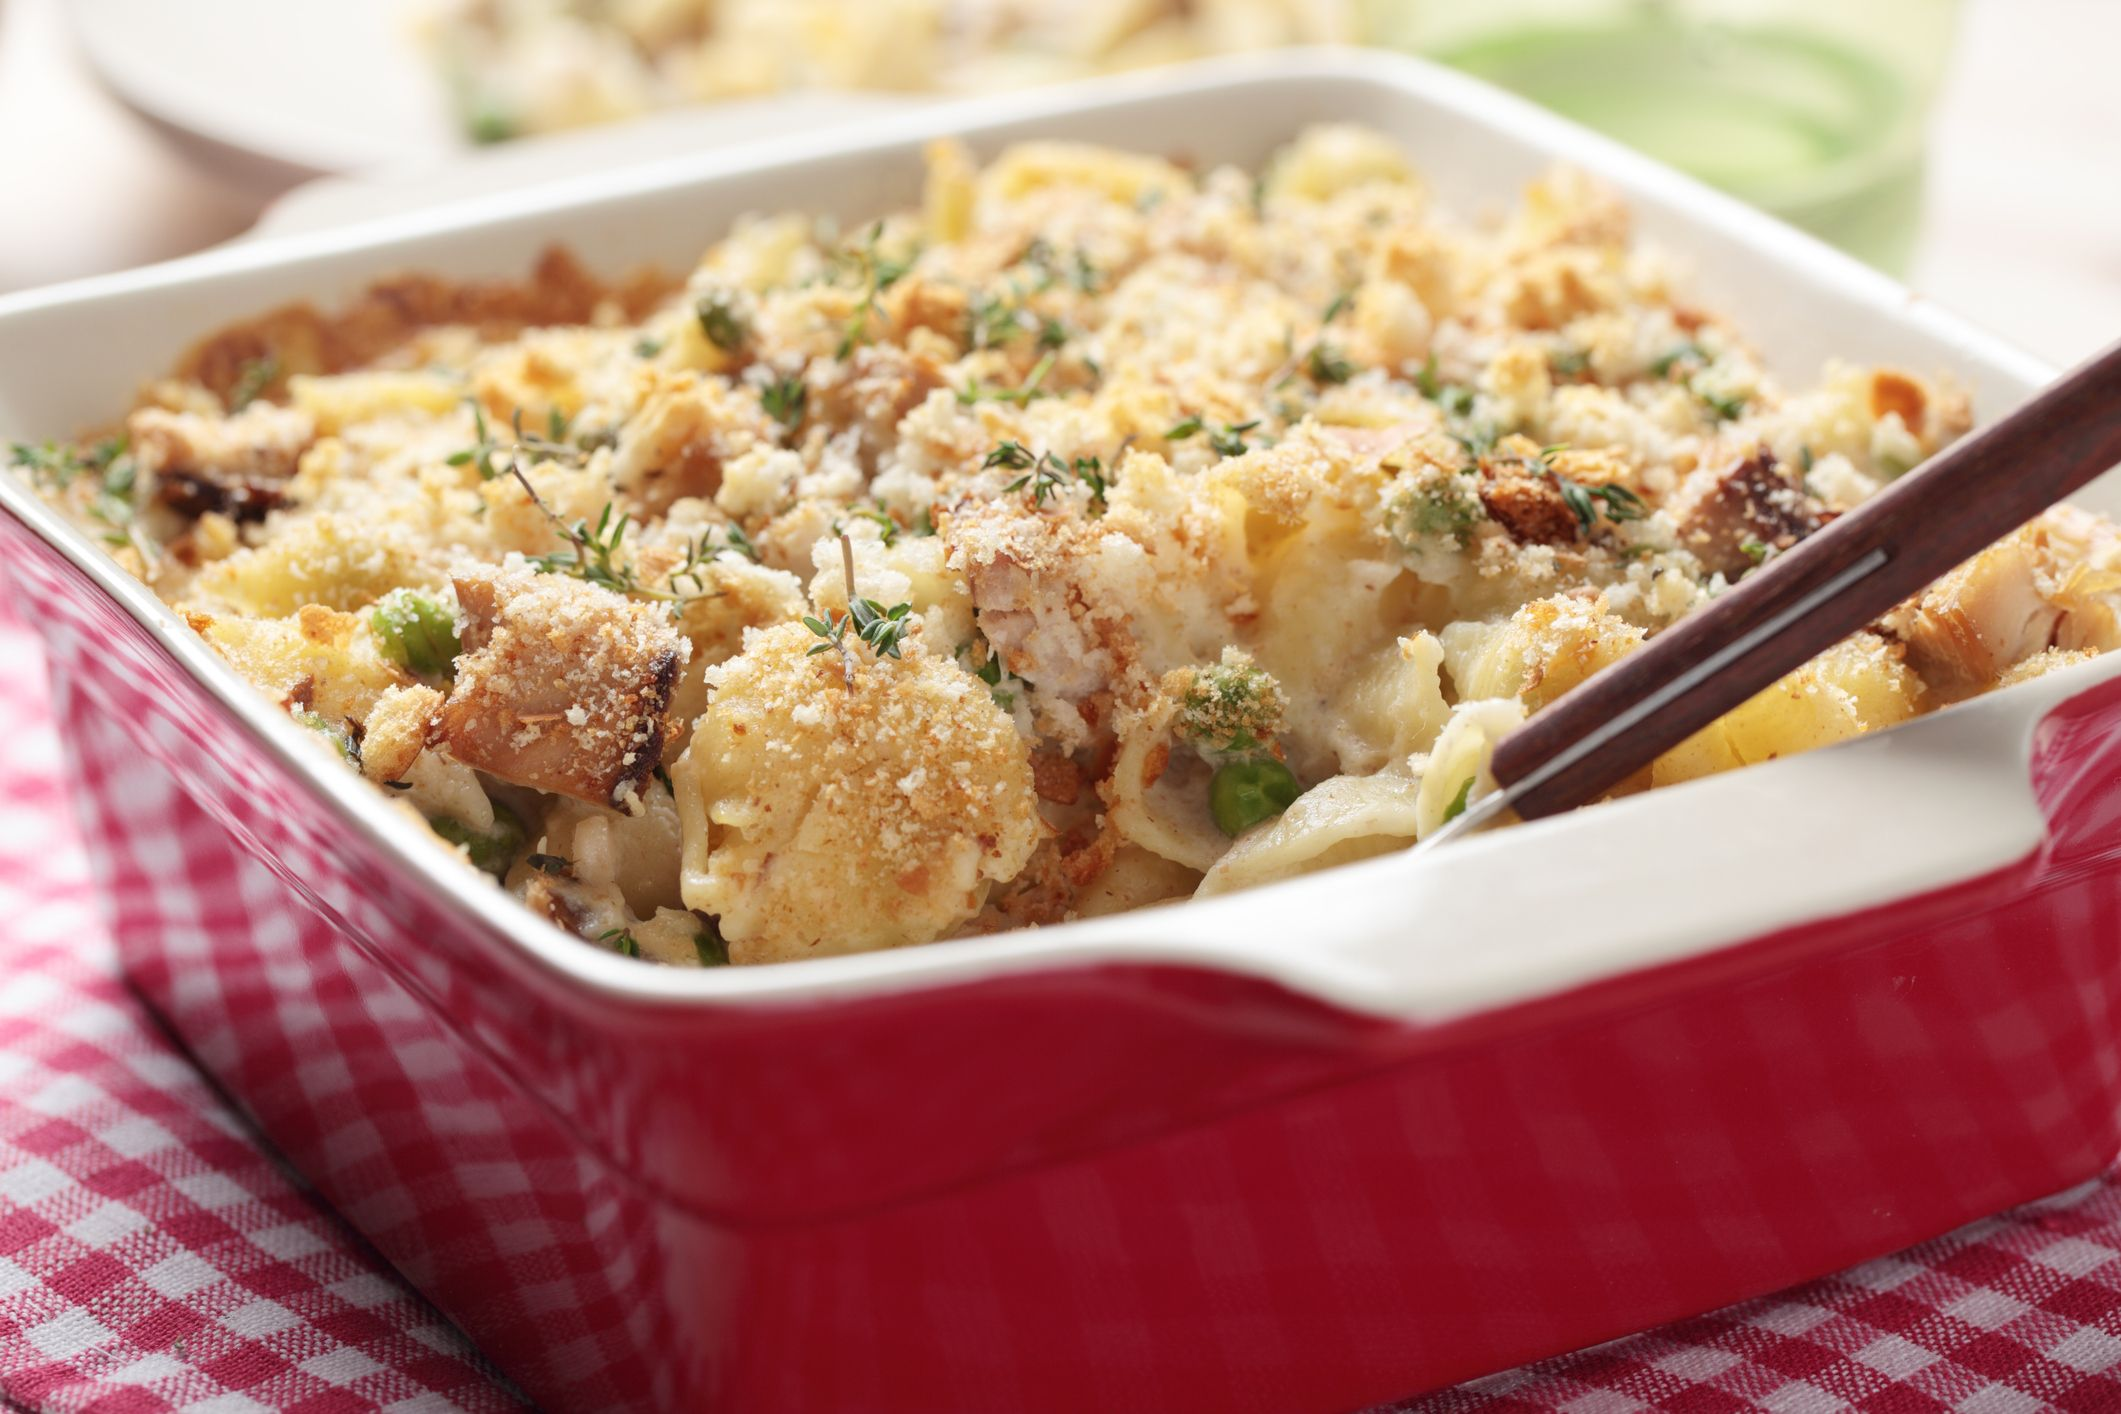 Tuna casserole with pasta and crumbs